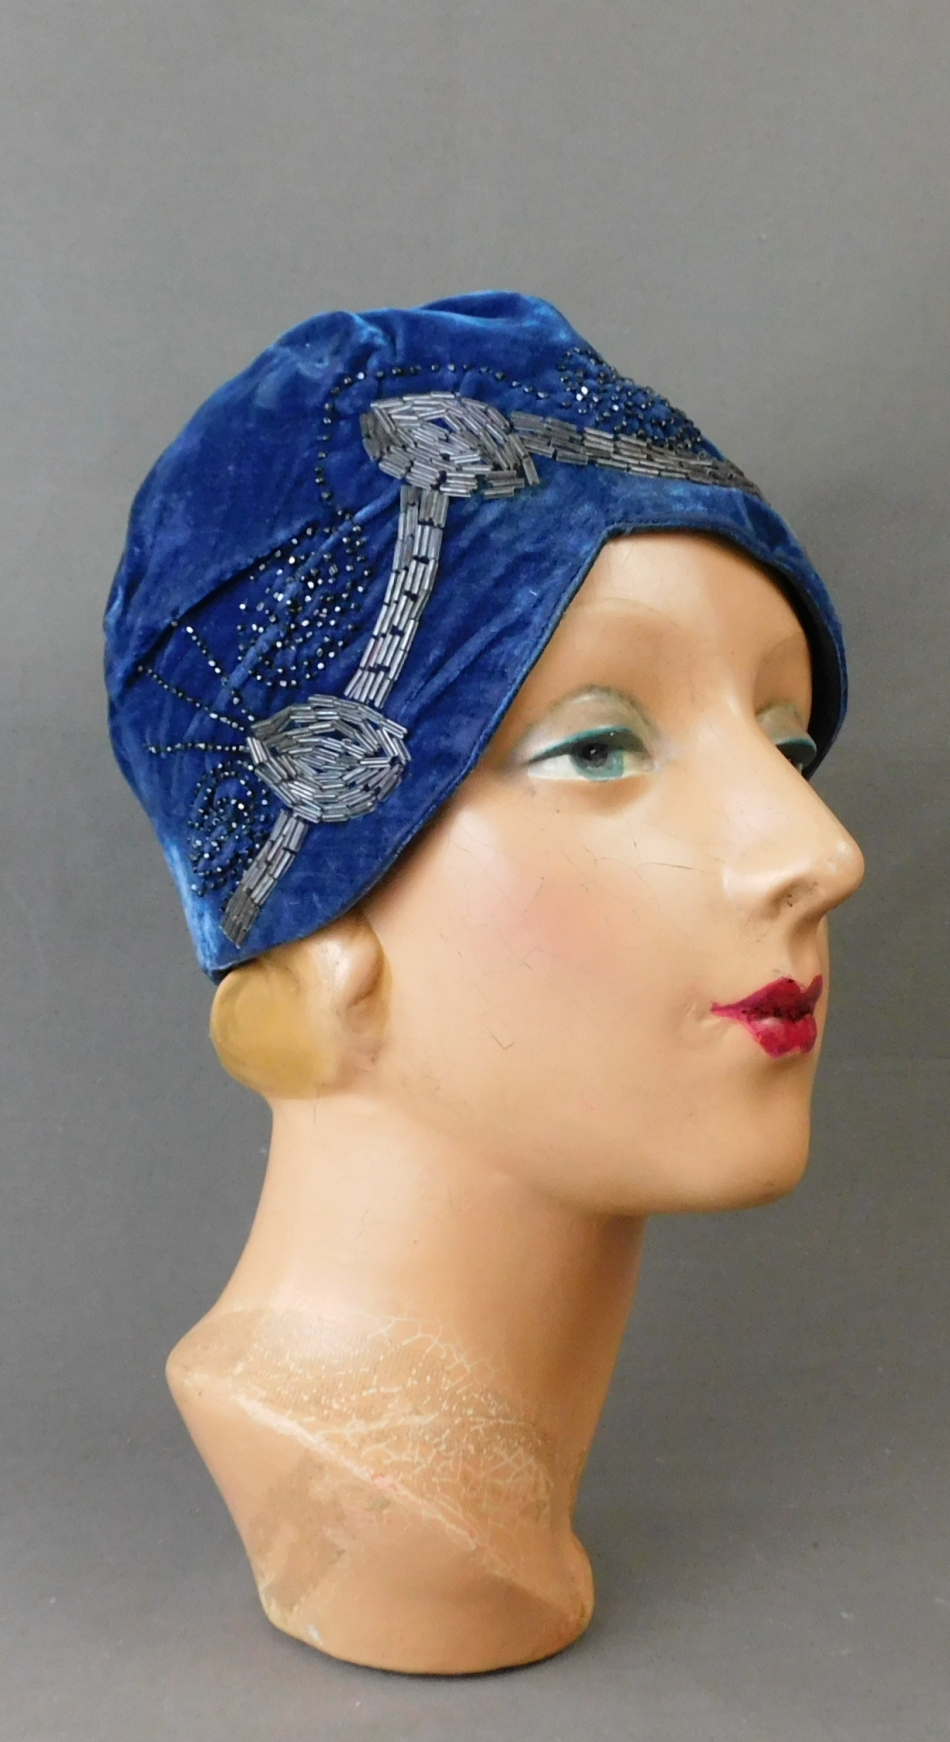 Vintage 1920s Blue Velvet Cloche Hat, Beaded, 21 inch head, some issues